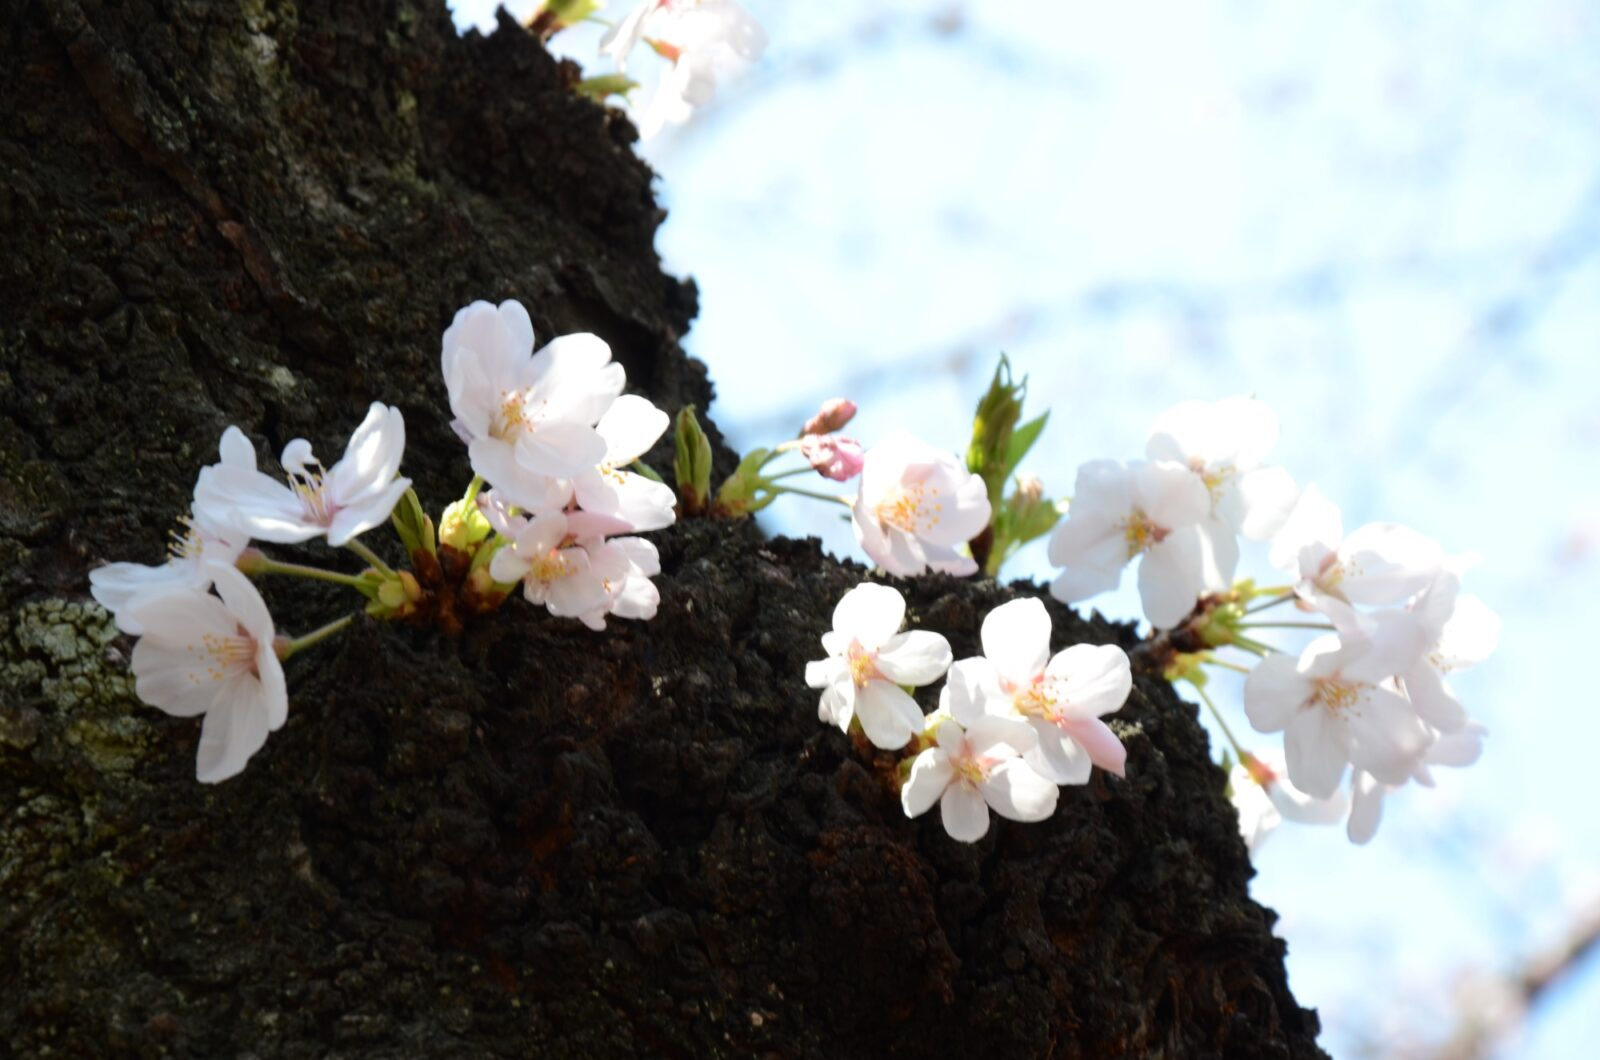 pink blossom around a tree trunk